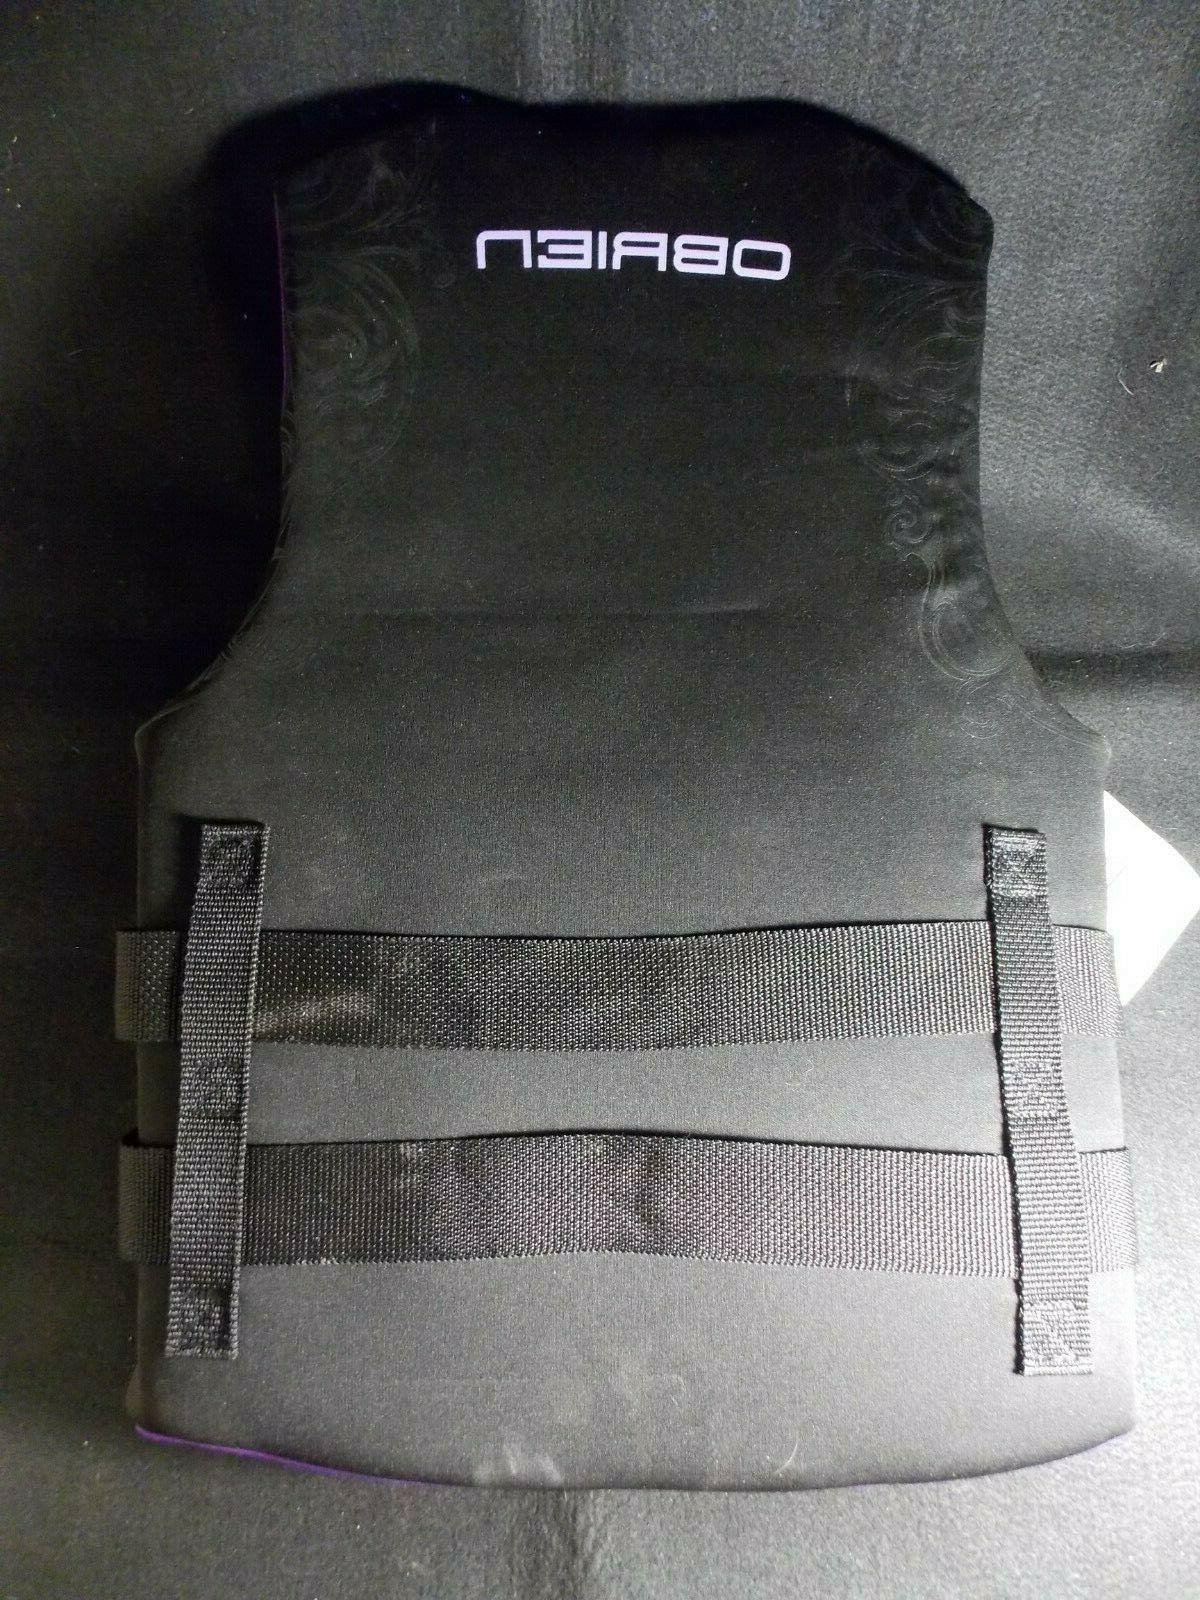 Obrien Impulse Neo Life Vest X-Small BRAND with